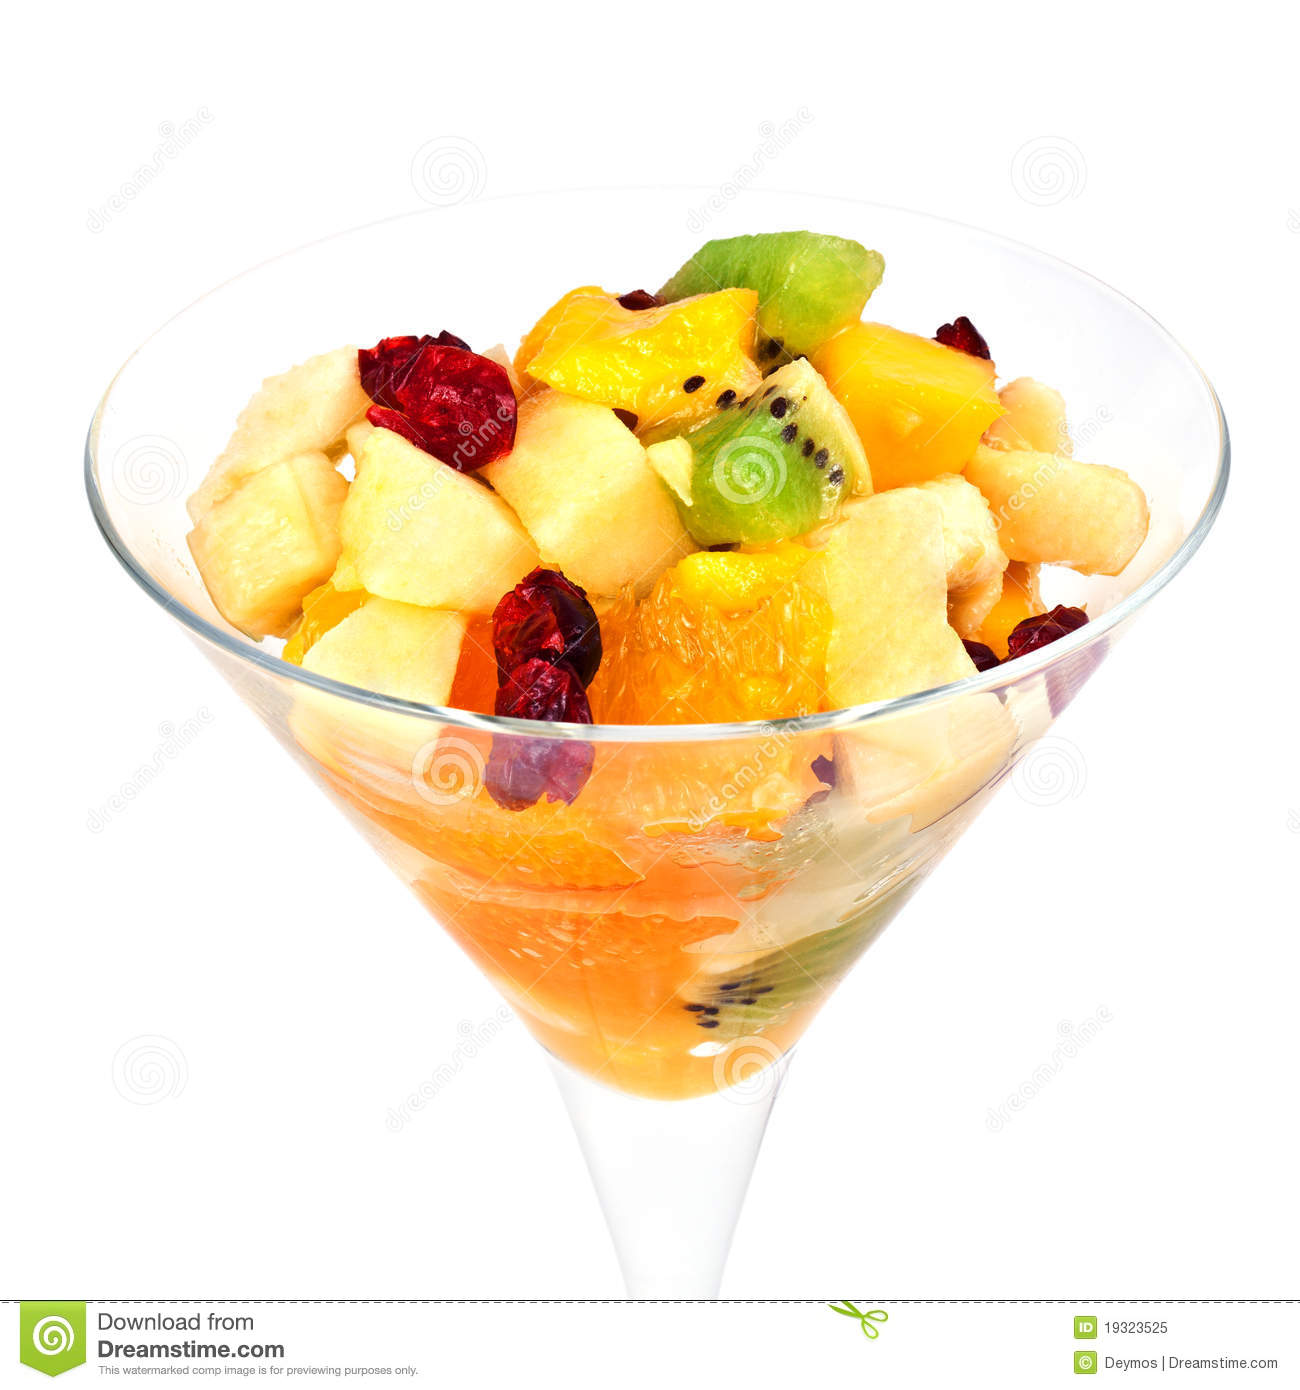 fruit salad breakfast healthy fruit ninja download